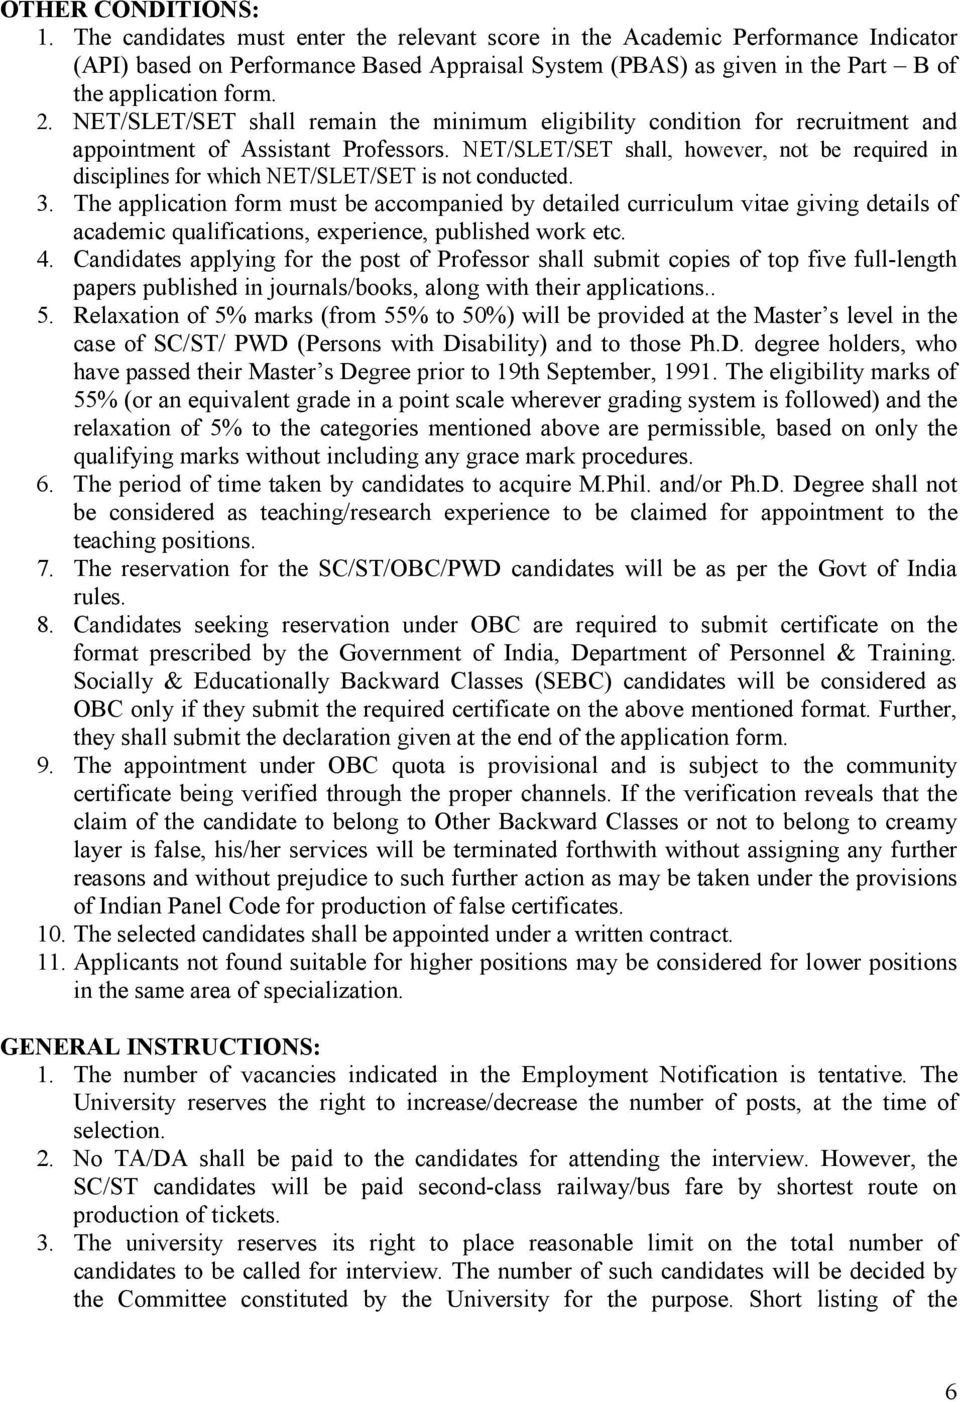 NET/SLET/SET shall remain the minimum eligibility condition for recruitment and appointment of Assistant Professors.